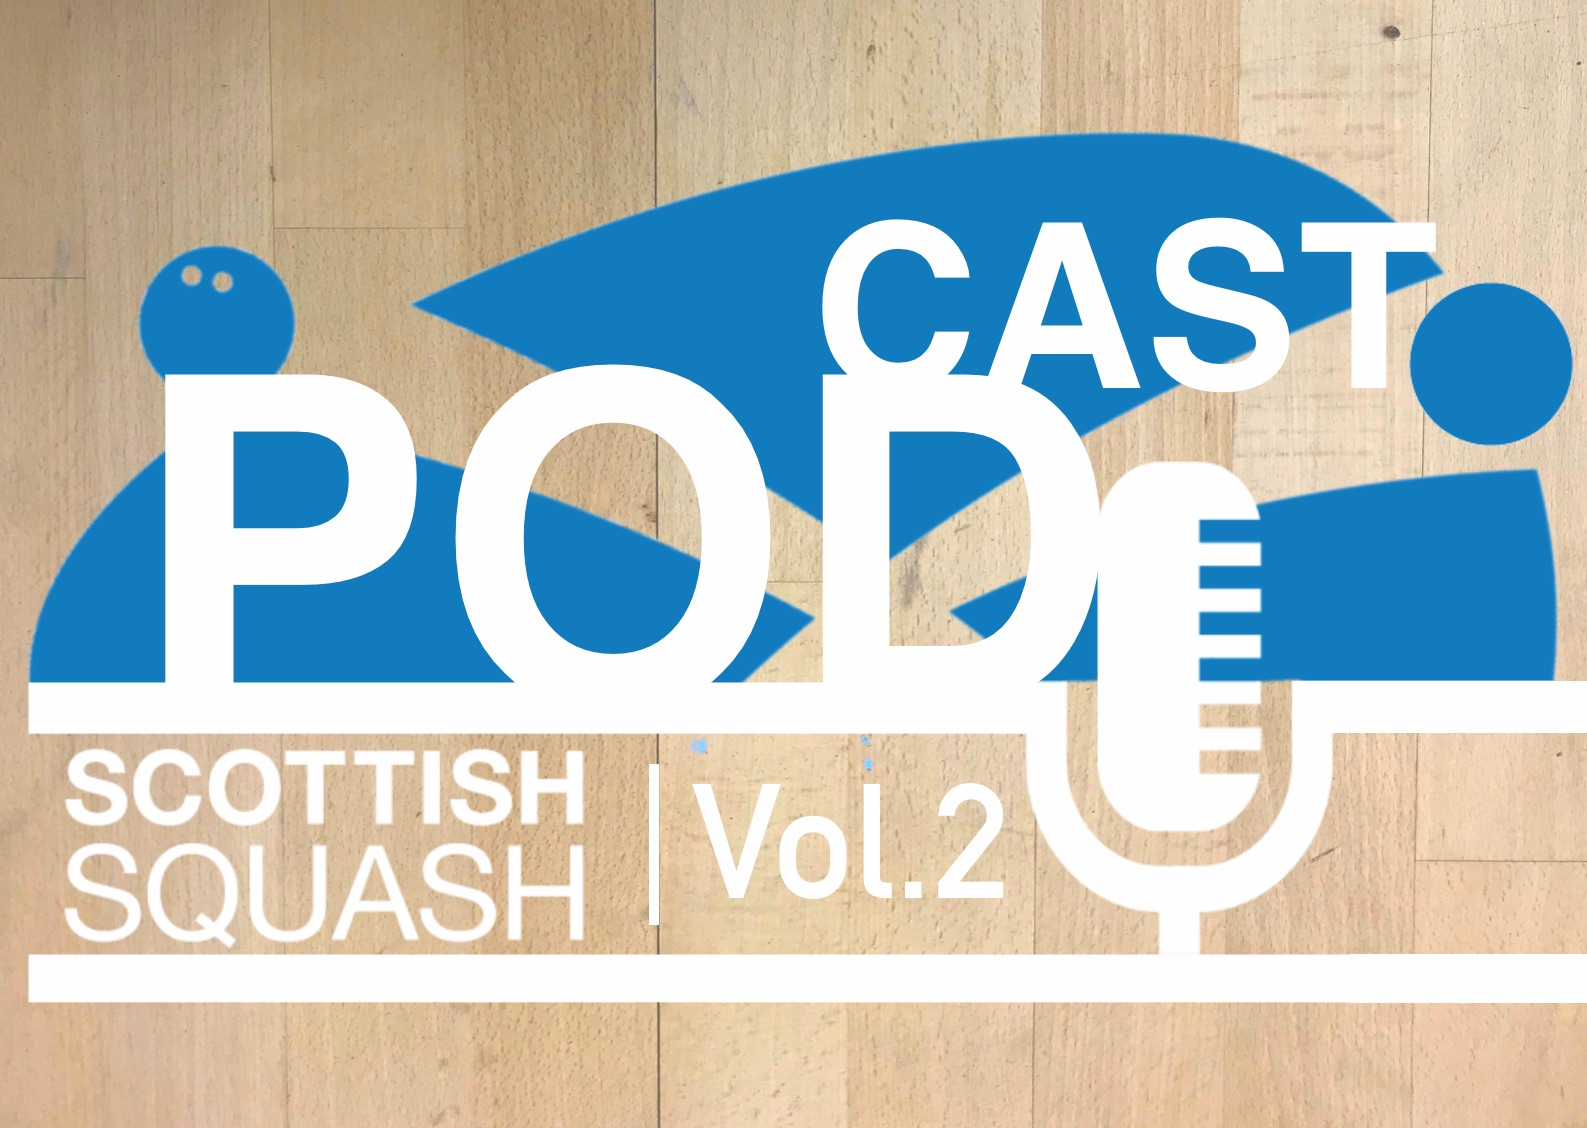 Scottish Squash Podcast - Vol.2 - Developing Junior Squash Players